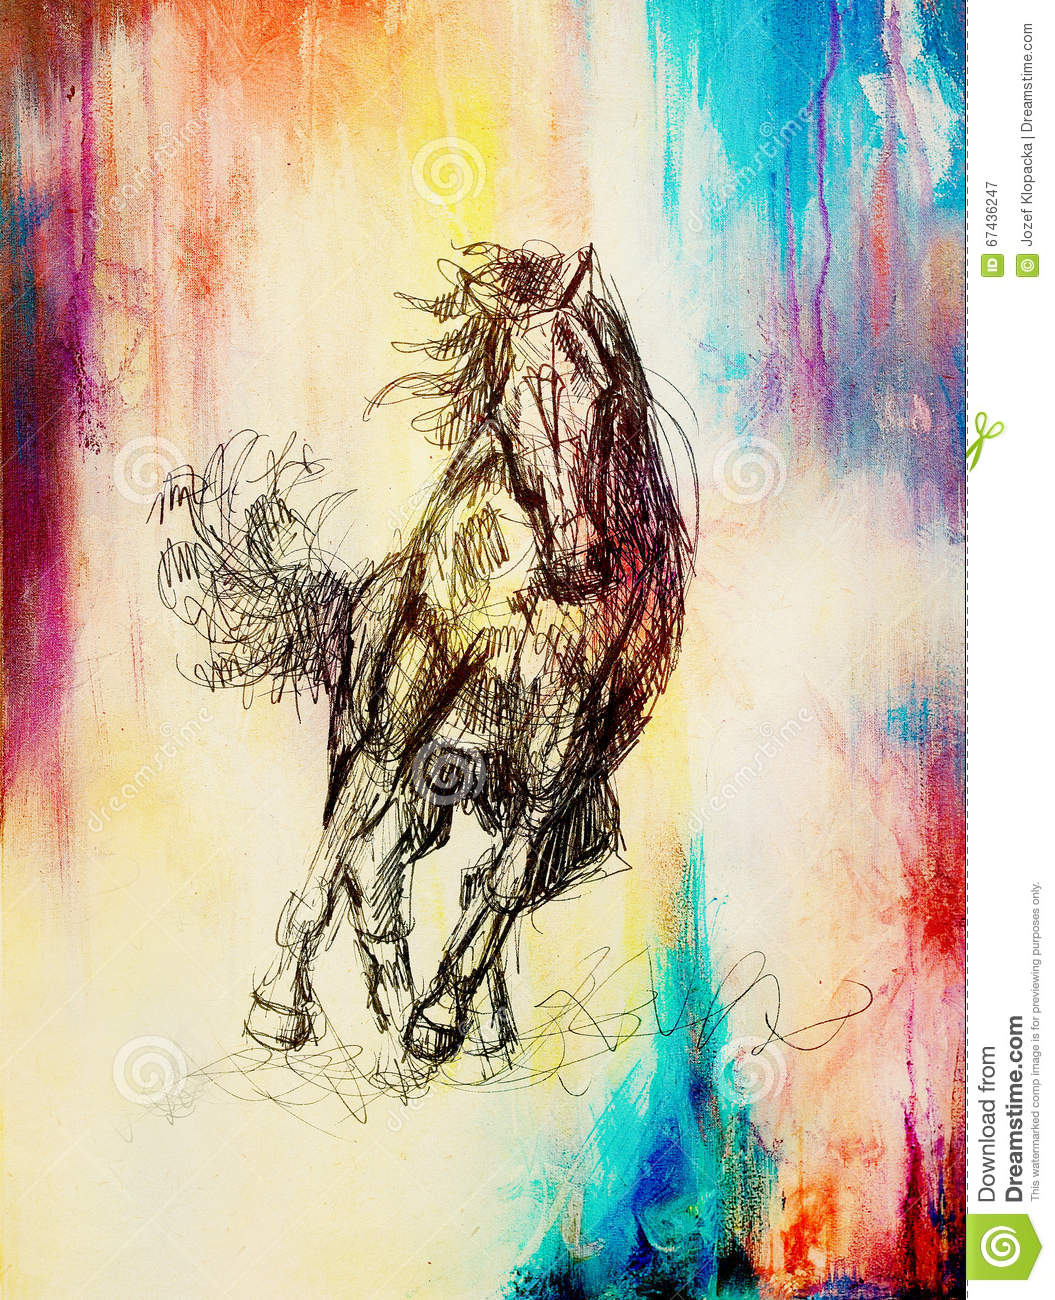 Draw Pencil Horse On Old Paper Vintage Paper And Old Structure With Color Spots Stock Illustration Illustration Of Beautiful Abstract 67436247